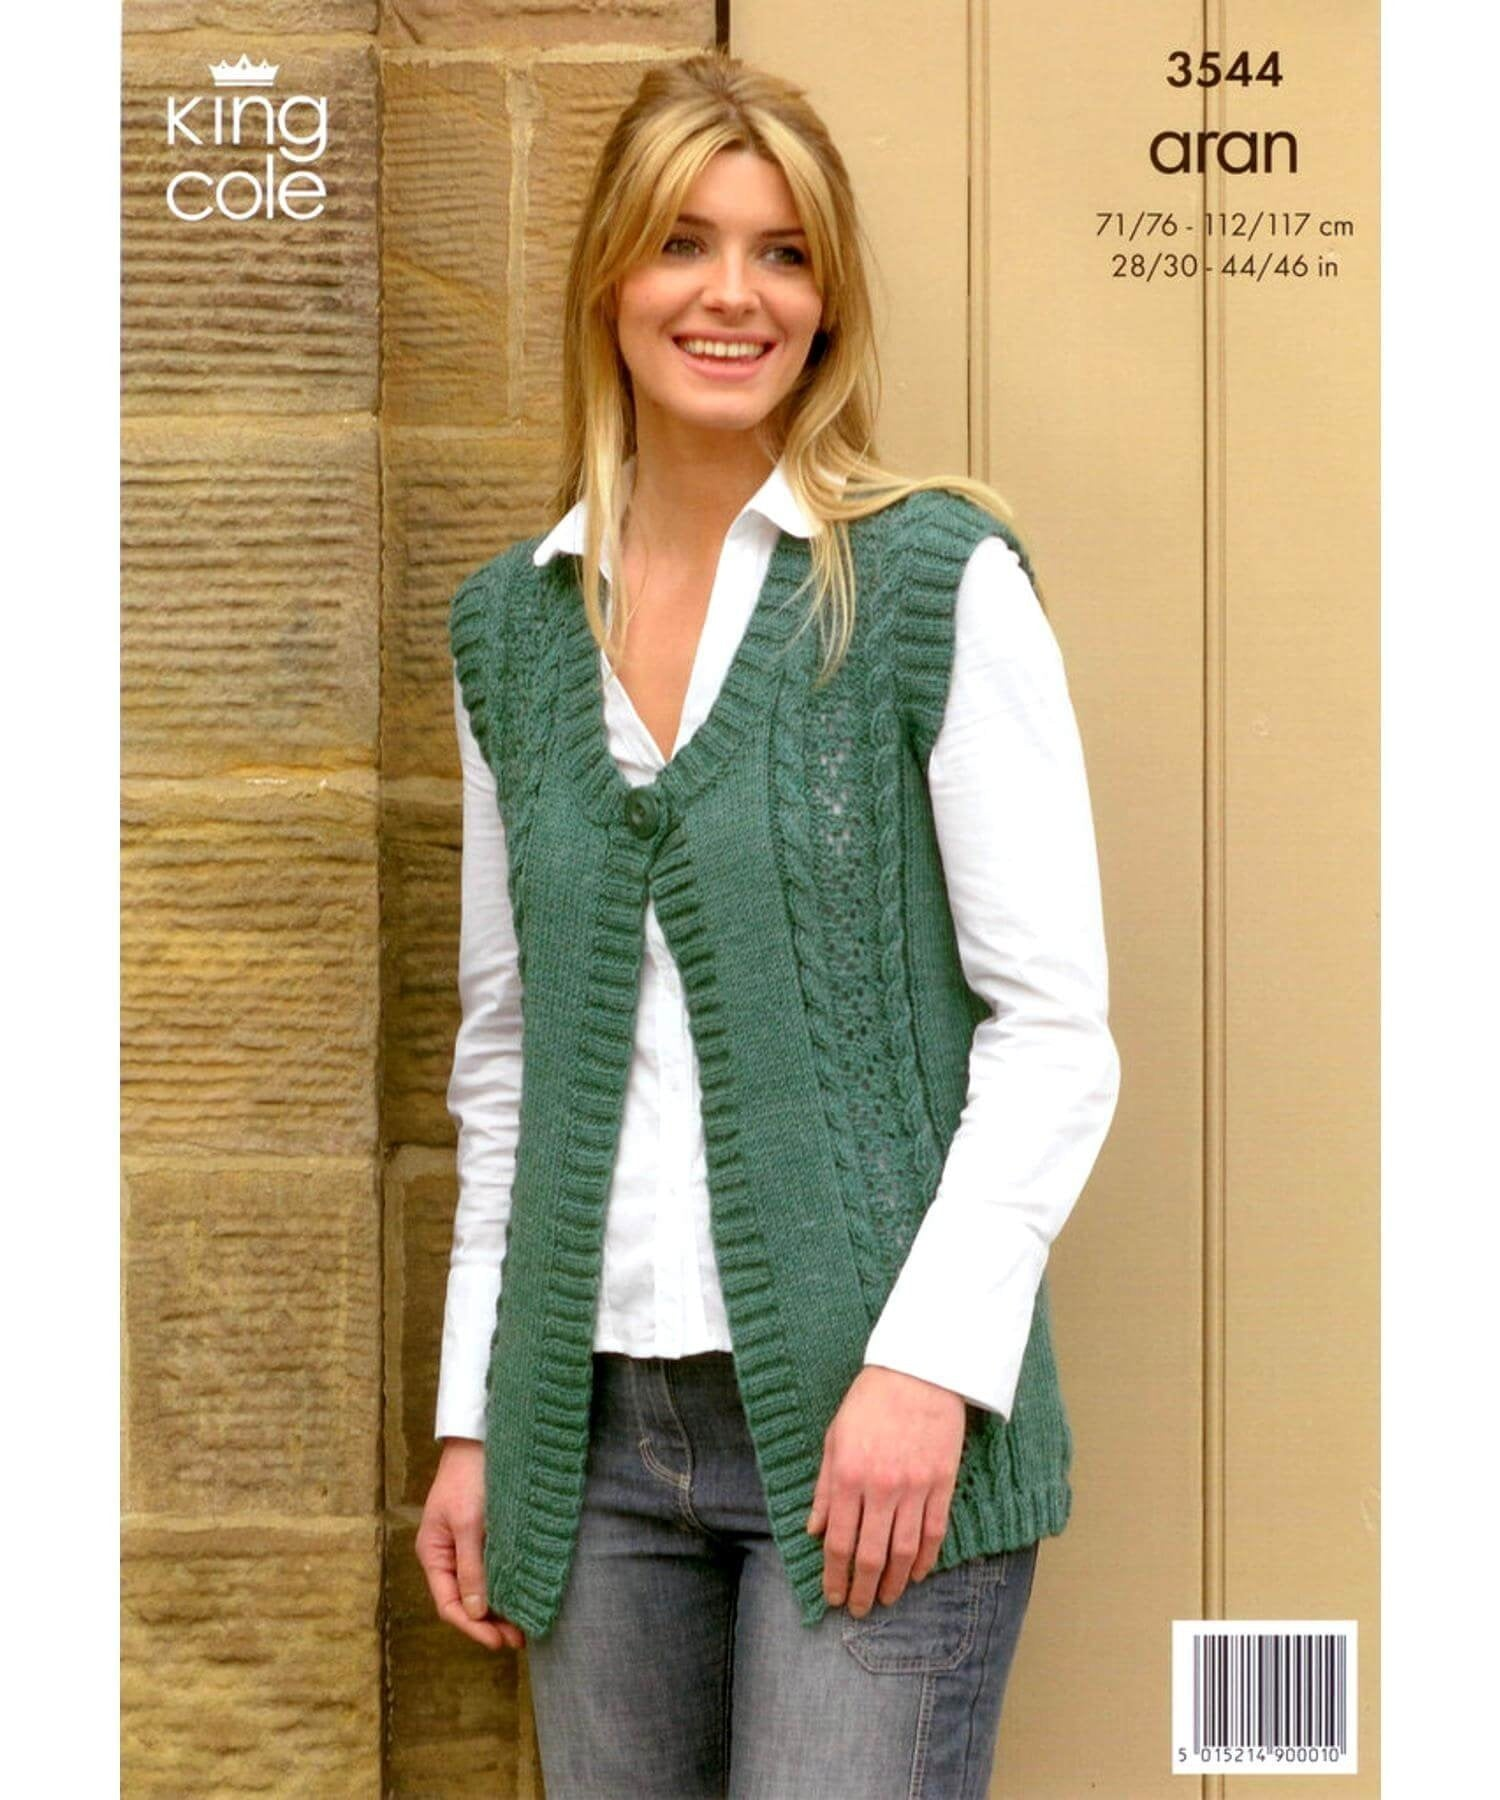 King Cole Aran Pattern 3544 - [Springwools] - Knitting - Irish Gifts